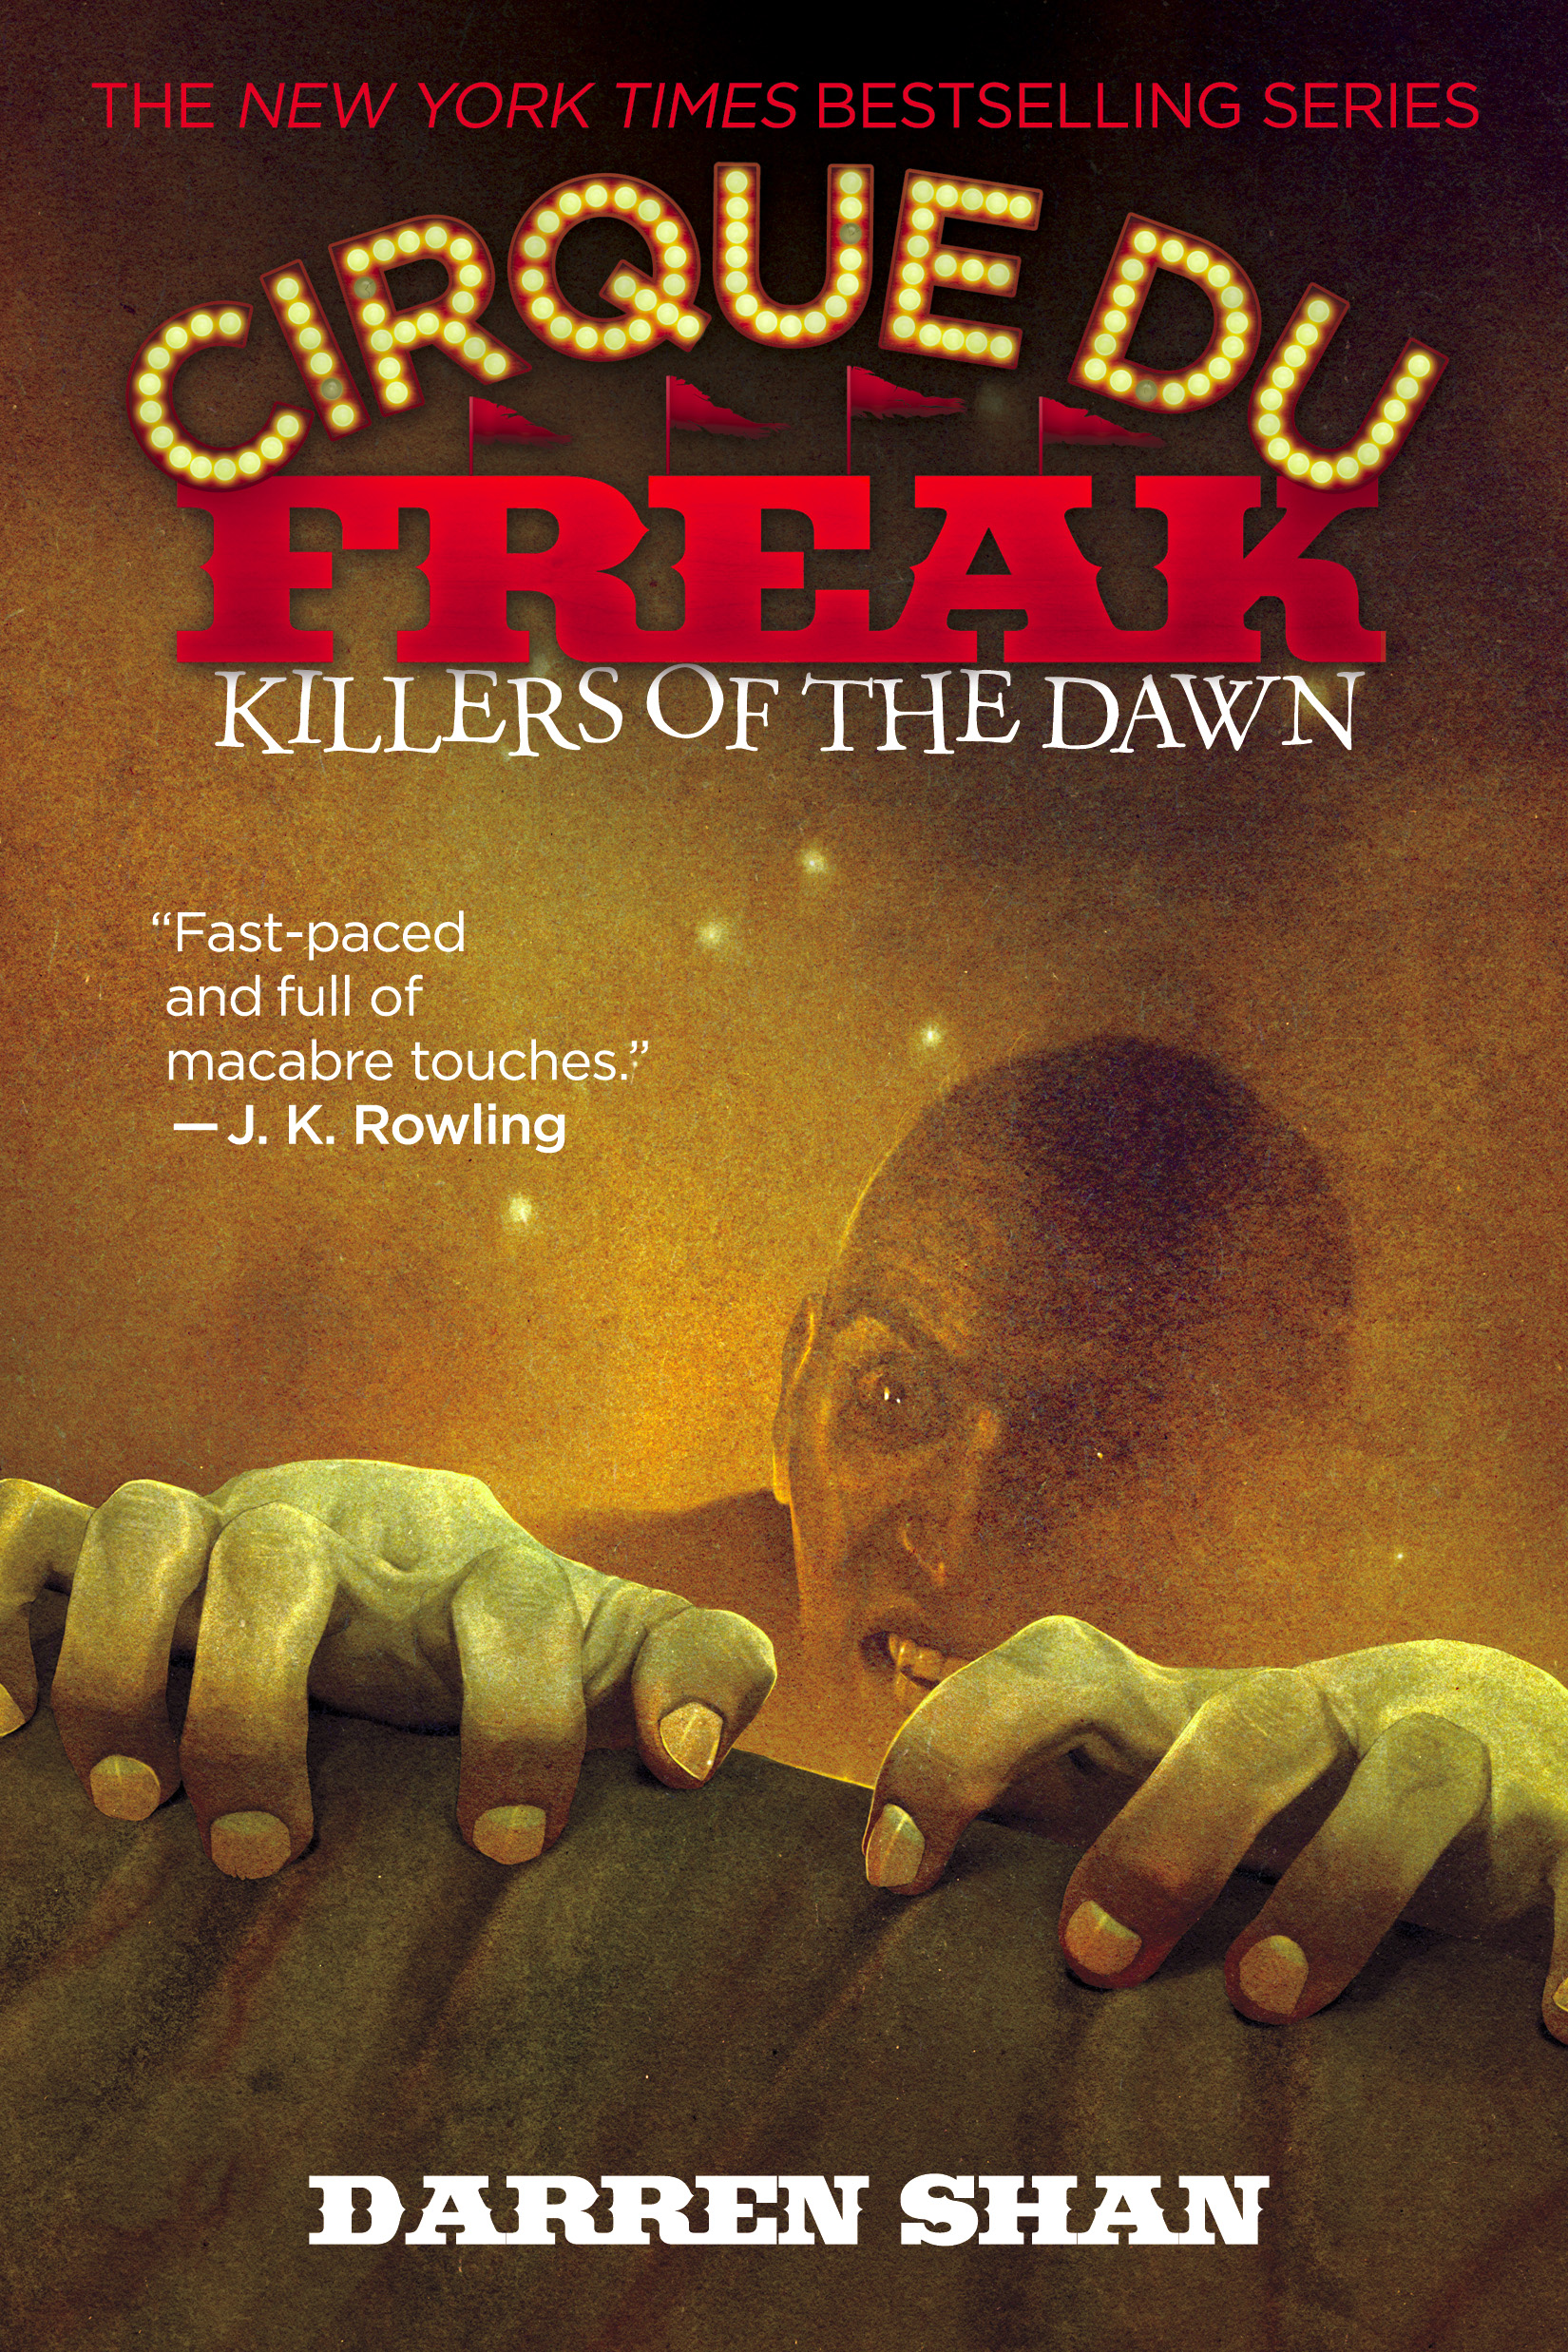 Cirque Du Freak: Killers of the Dawn by Darren Shan Designed by Ben Mautner for Little, Brown Logo & Identity by Ben Mautner. Illustrated by Sam Weber.